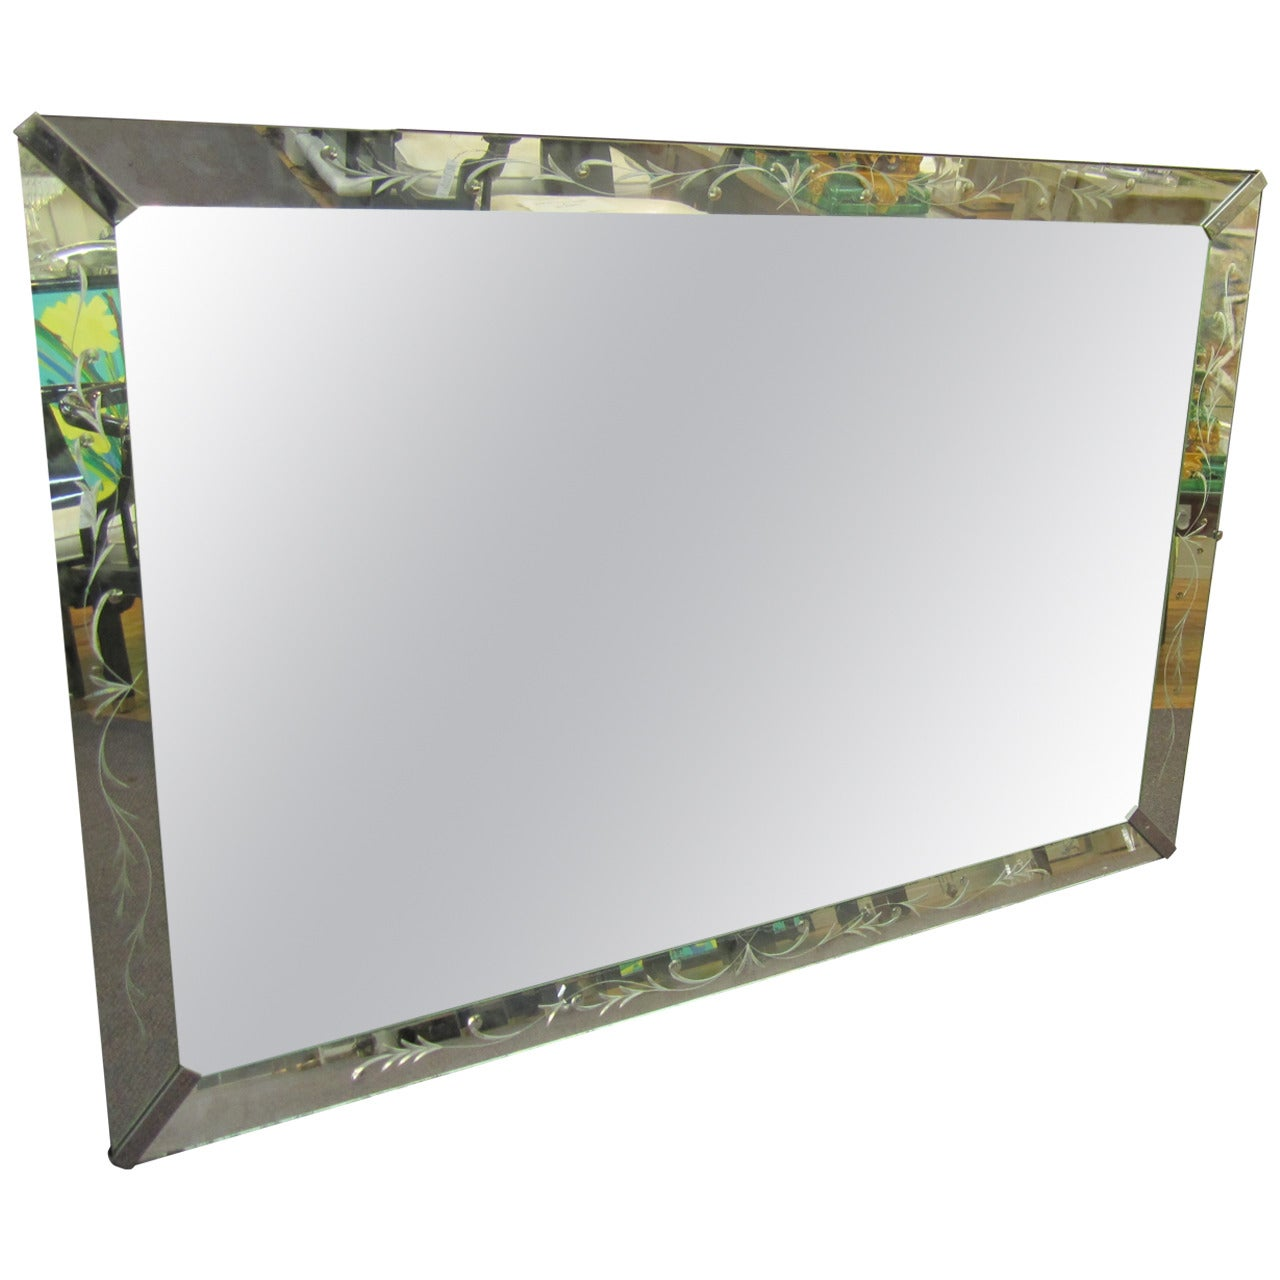 Large Midcentury Mirror in the Hollywood Regency Style